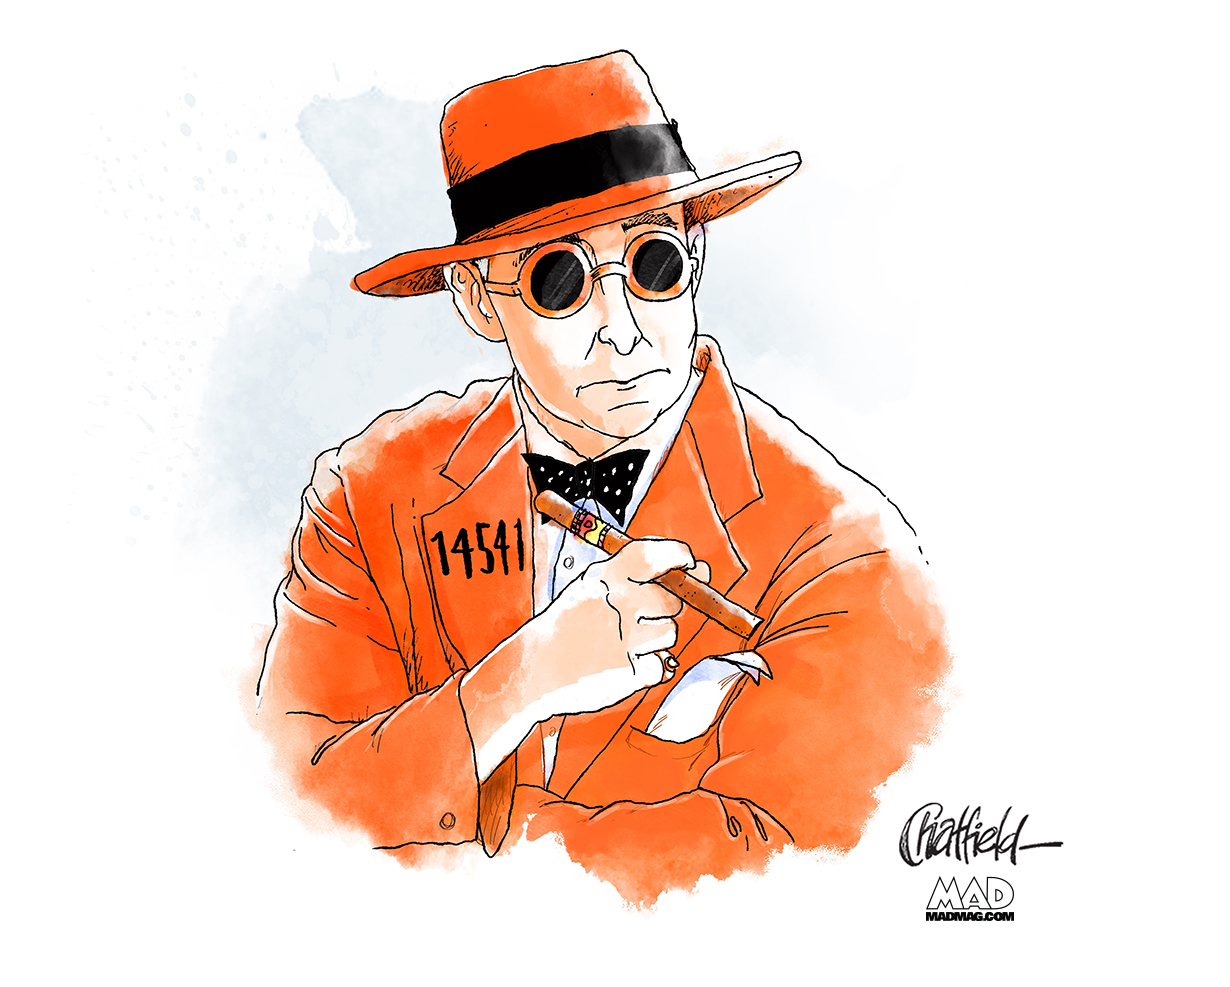 jason chatfield roger stone illustration mad magazine